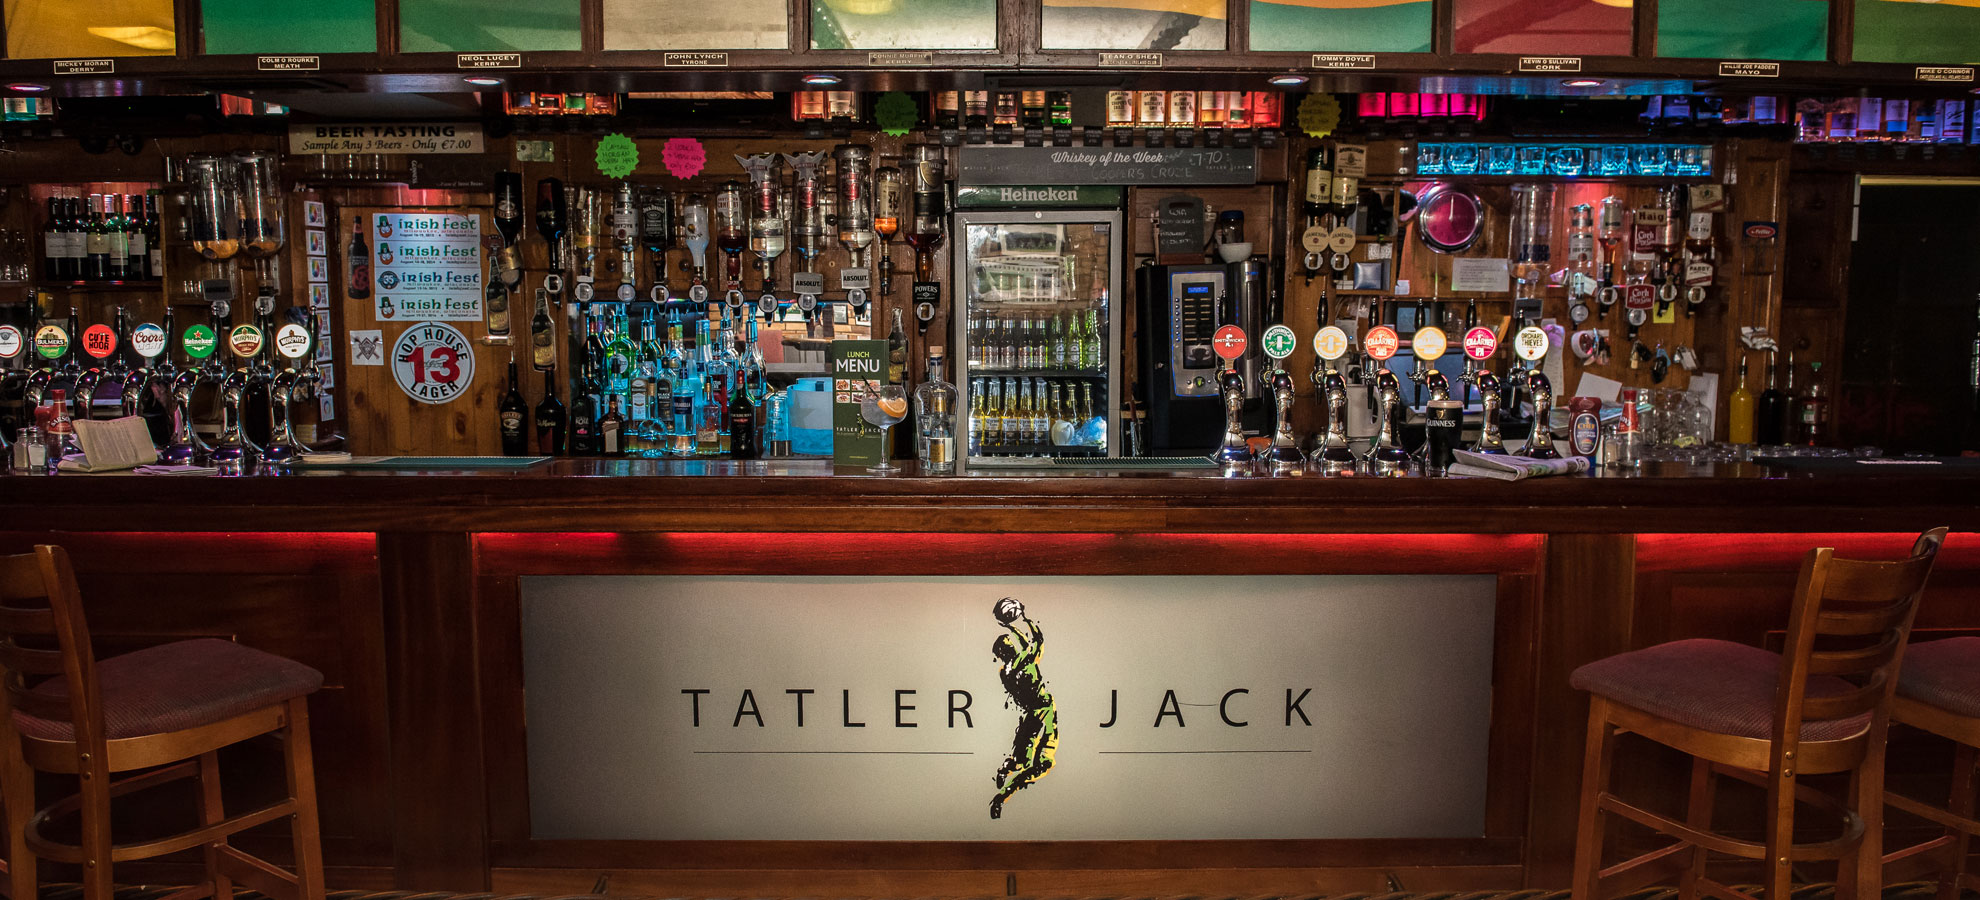 Killarney Bar - Tatler Jack